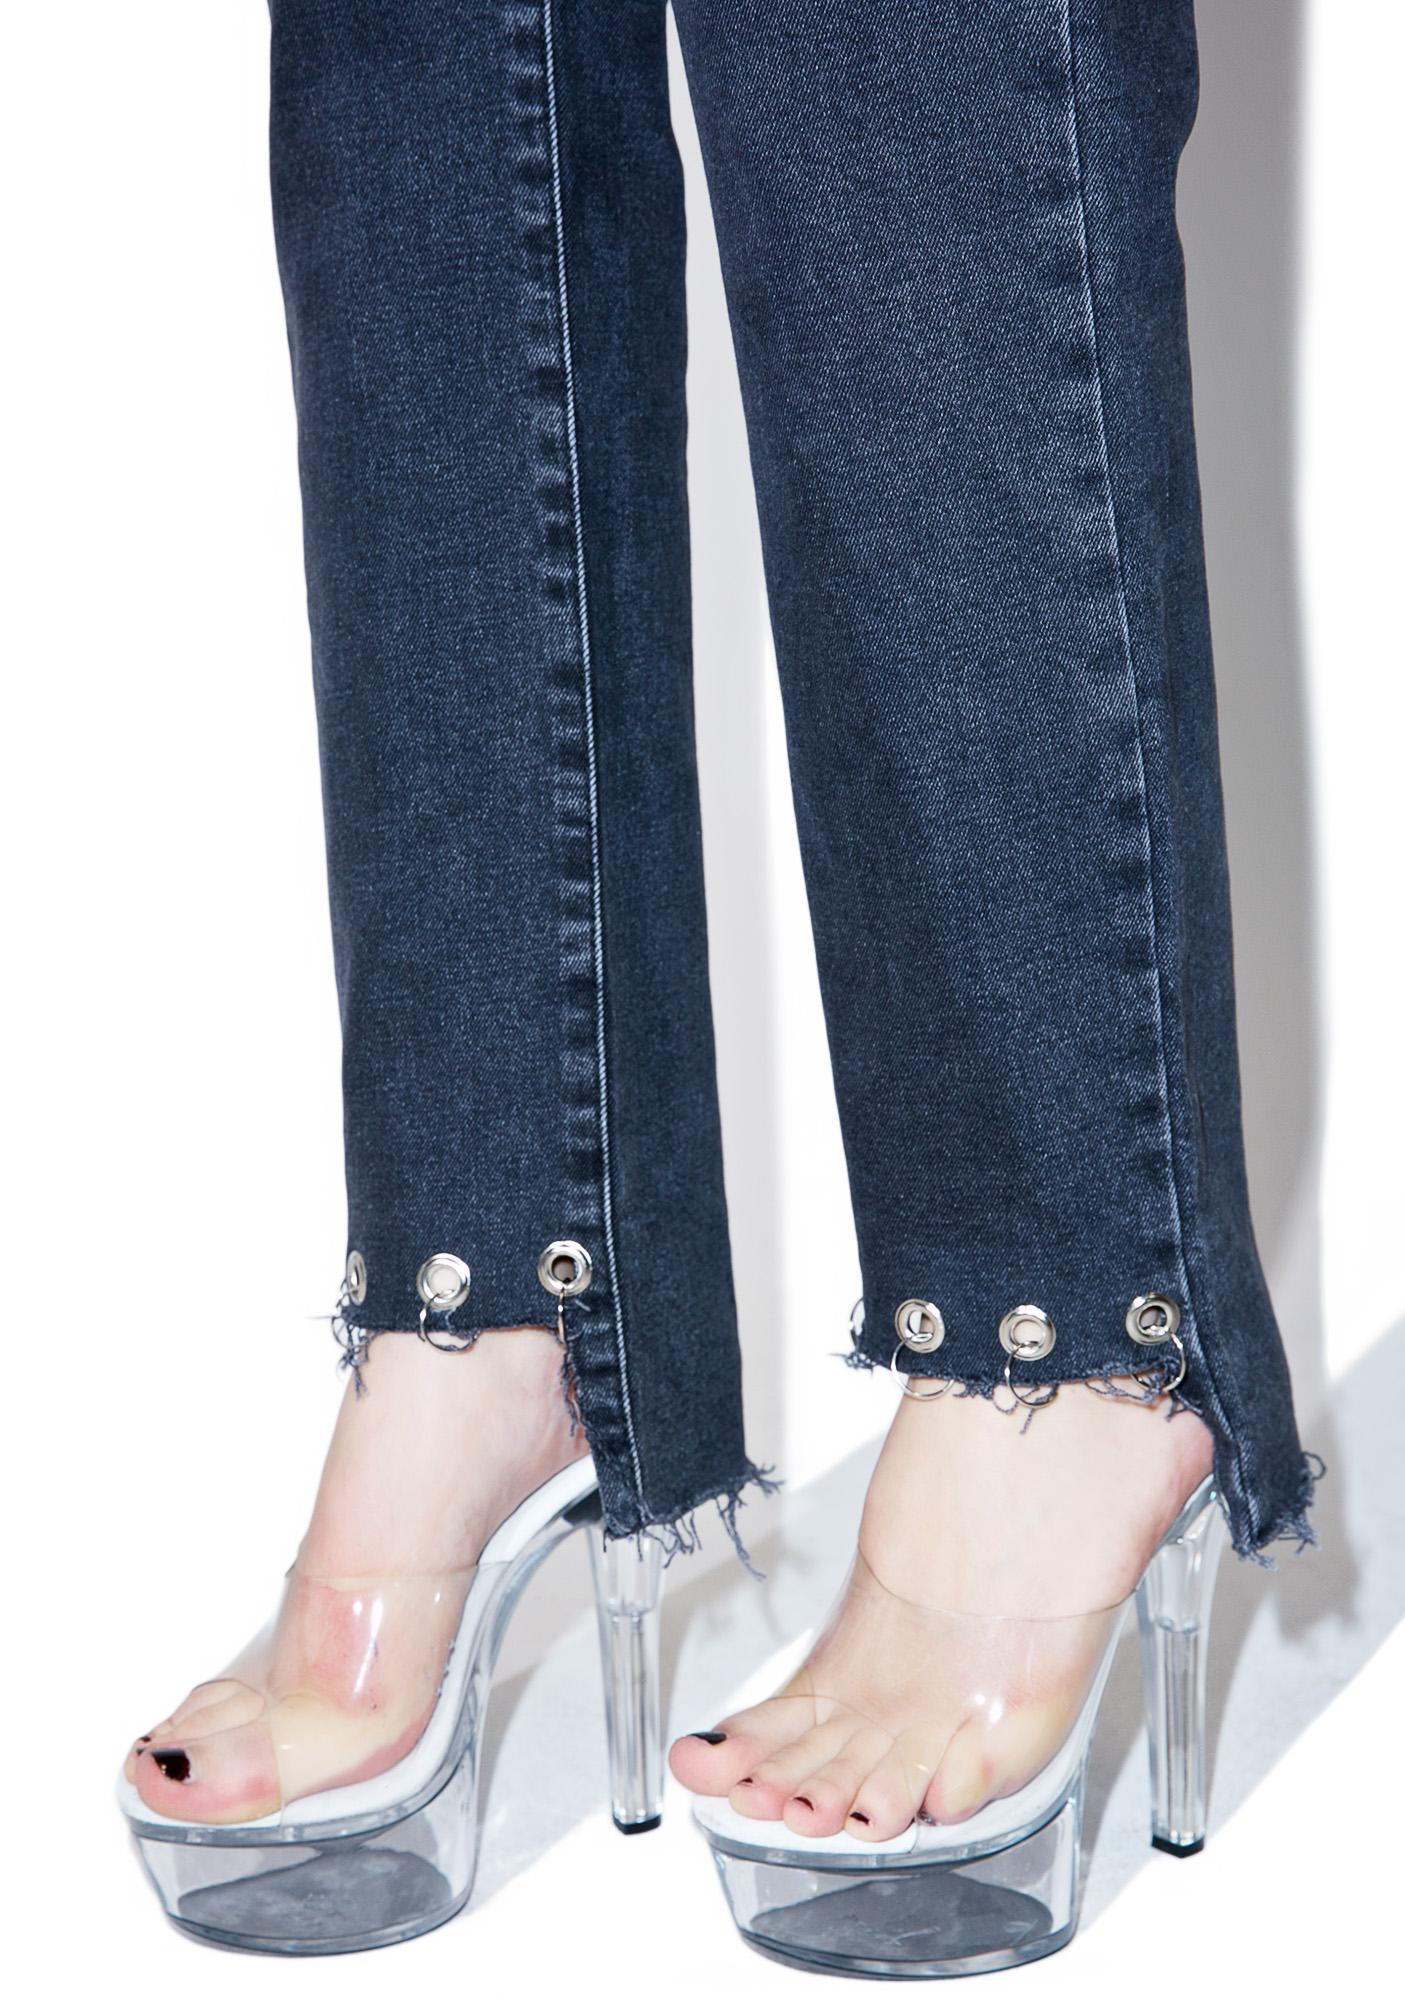 The Ragged Priest Duster Jeans